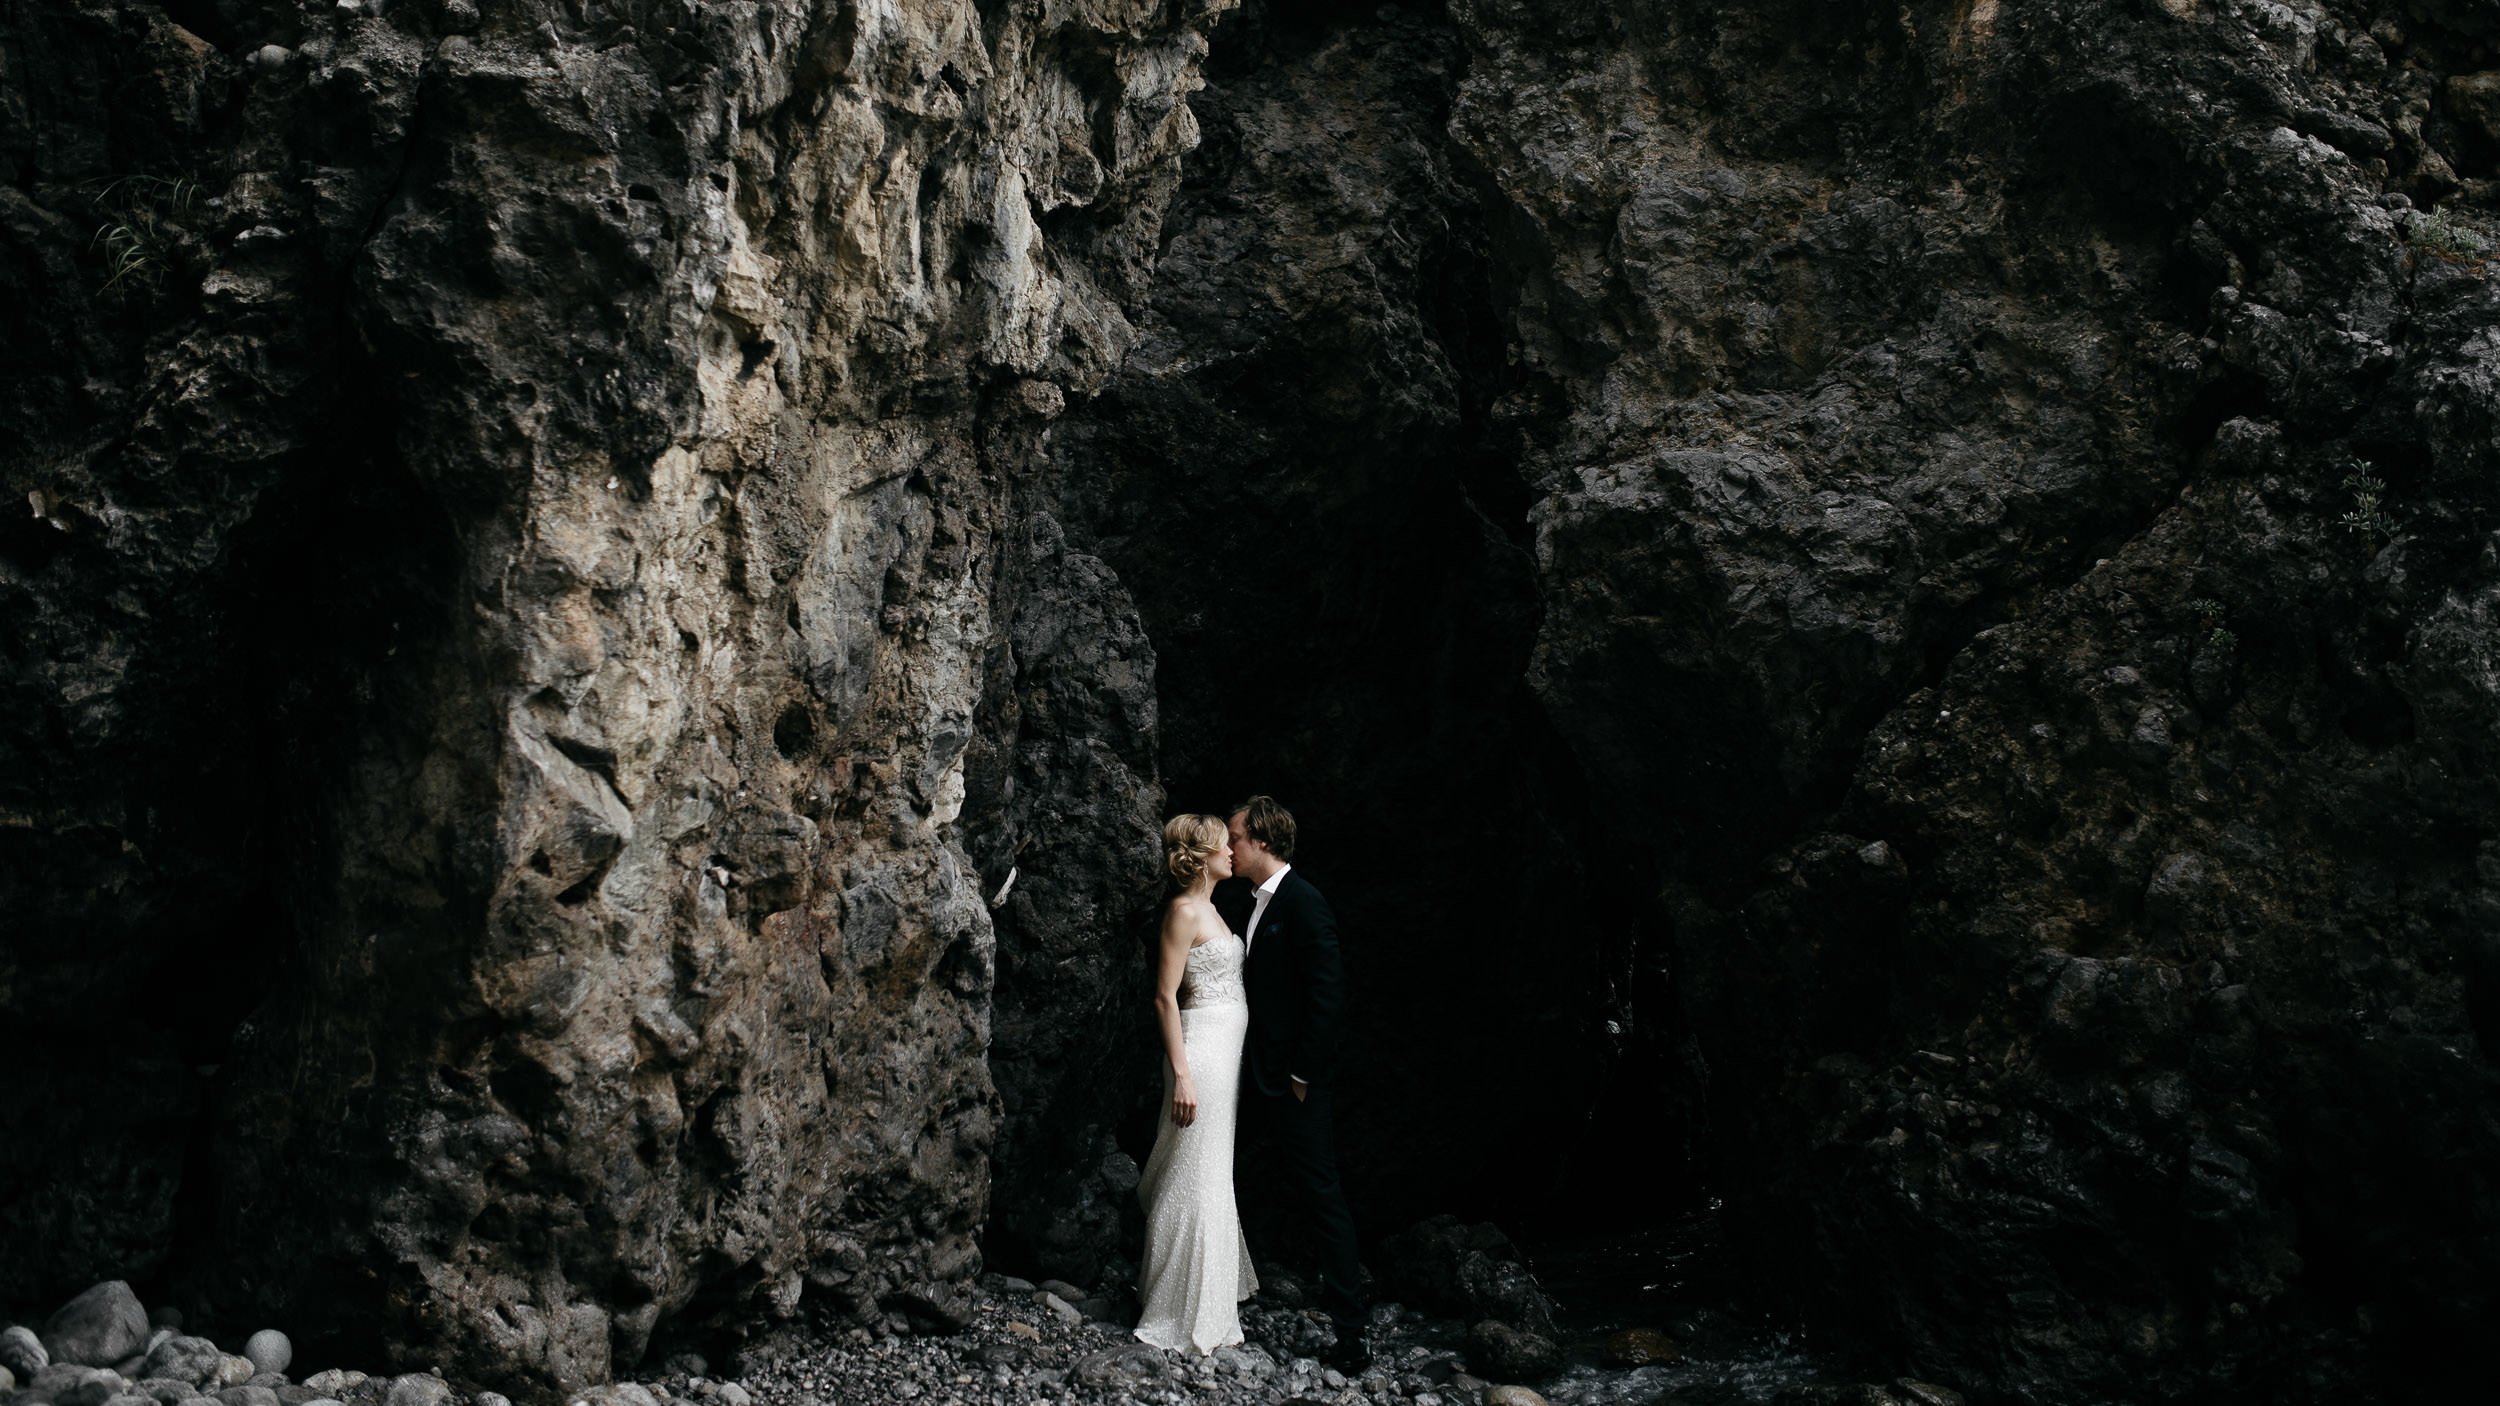 Jean-Laurent Gaudy, Spirit Mountain Destination Wedding Elopement Photographer.